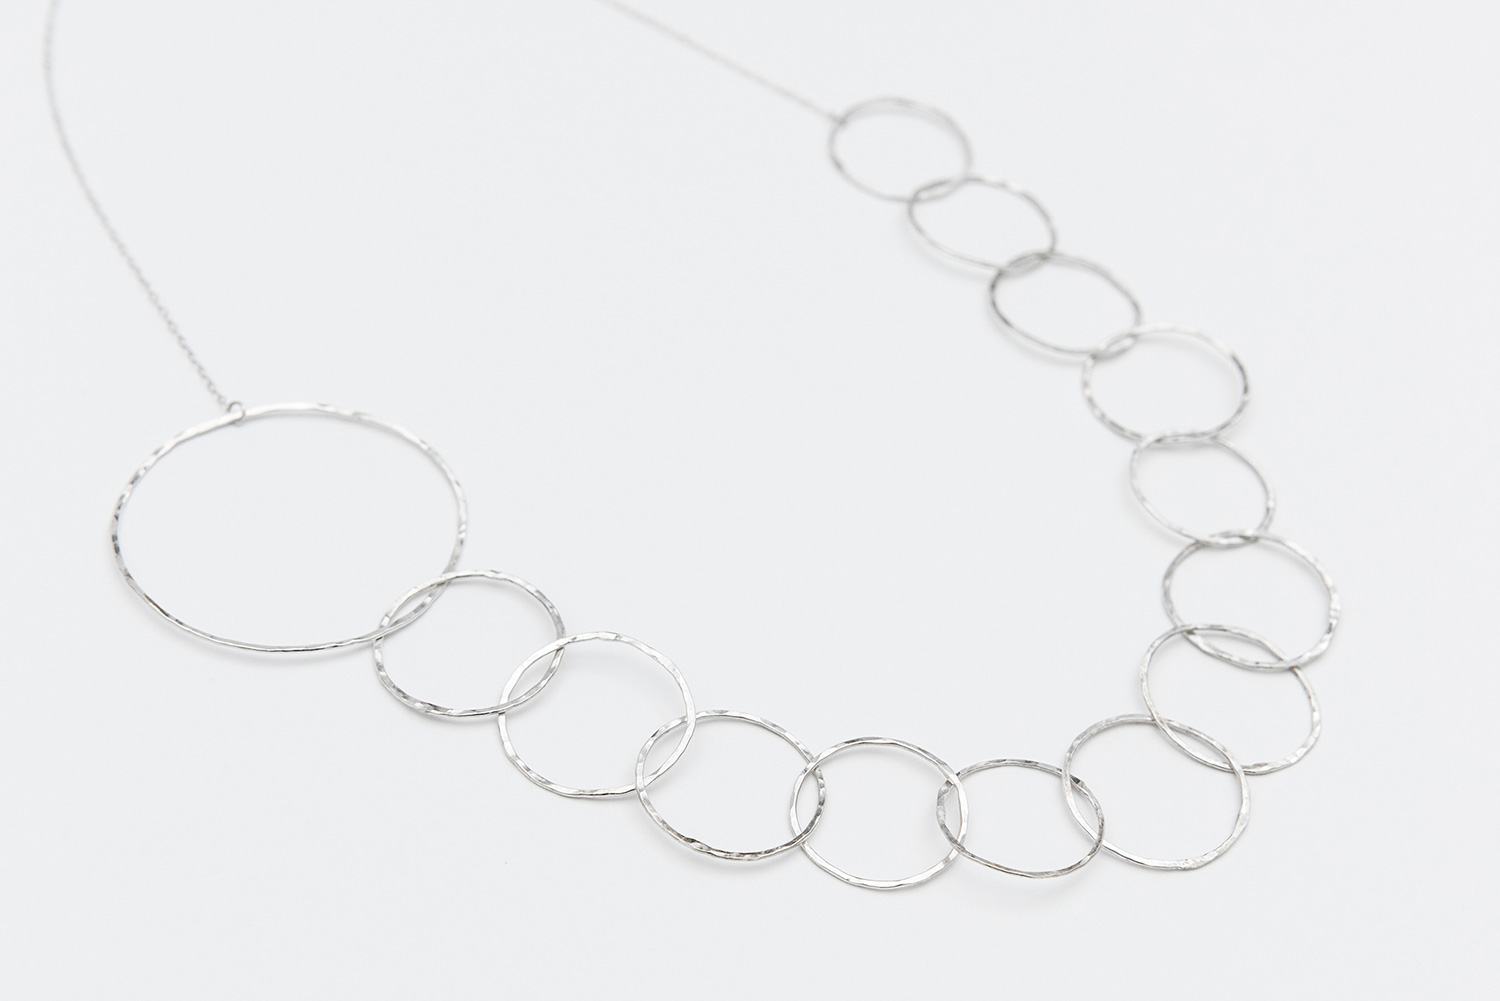 This hammered silver jewelry is handmade by Bev Feldman of Linkouture in Somerville Massachusetts. Linkouture offers luxury matching bracelets, necklaces, and earrings both locally and online. Each piece is elegant, versatile, and has unique character! On-white jewelry product photography and outdoor lifestyle photography for Linkouture is by Lorna Stell Photo, based in Somerville Massachusetts. Lorna Stell is a portrait and wedding photographer for families, bloggers, and entrepreneurs in Boston MA.